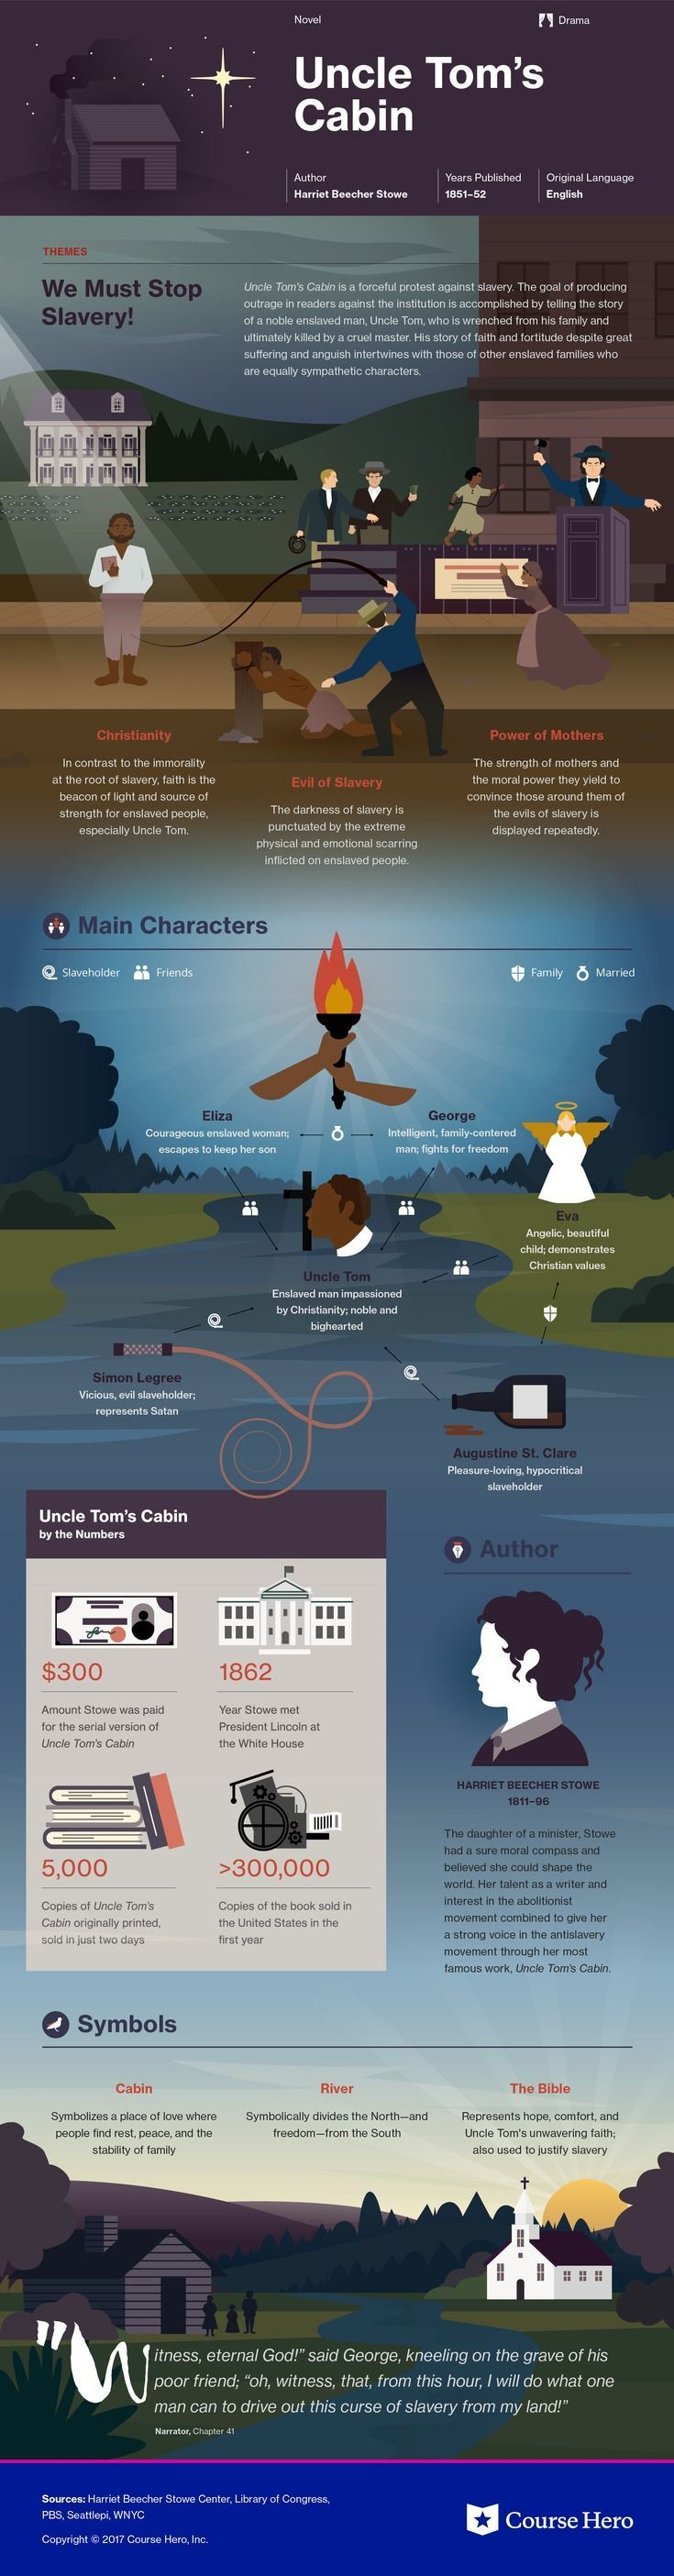 best ideas about harriet beecher stowe classic harriet beecher stowe s uncle tom s cabin infographic course hero